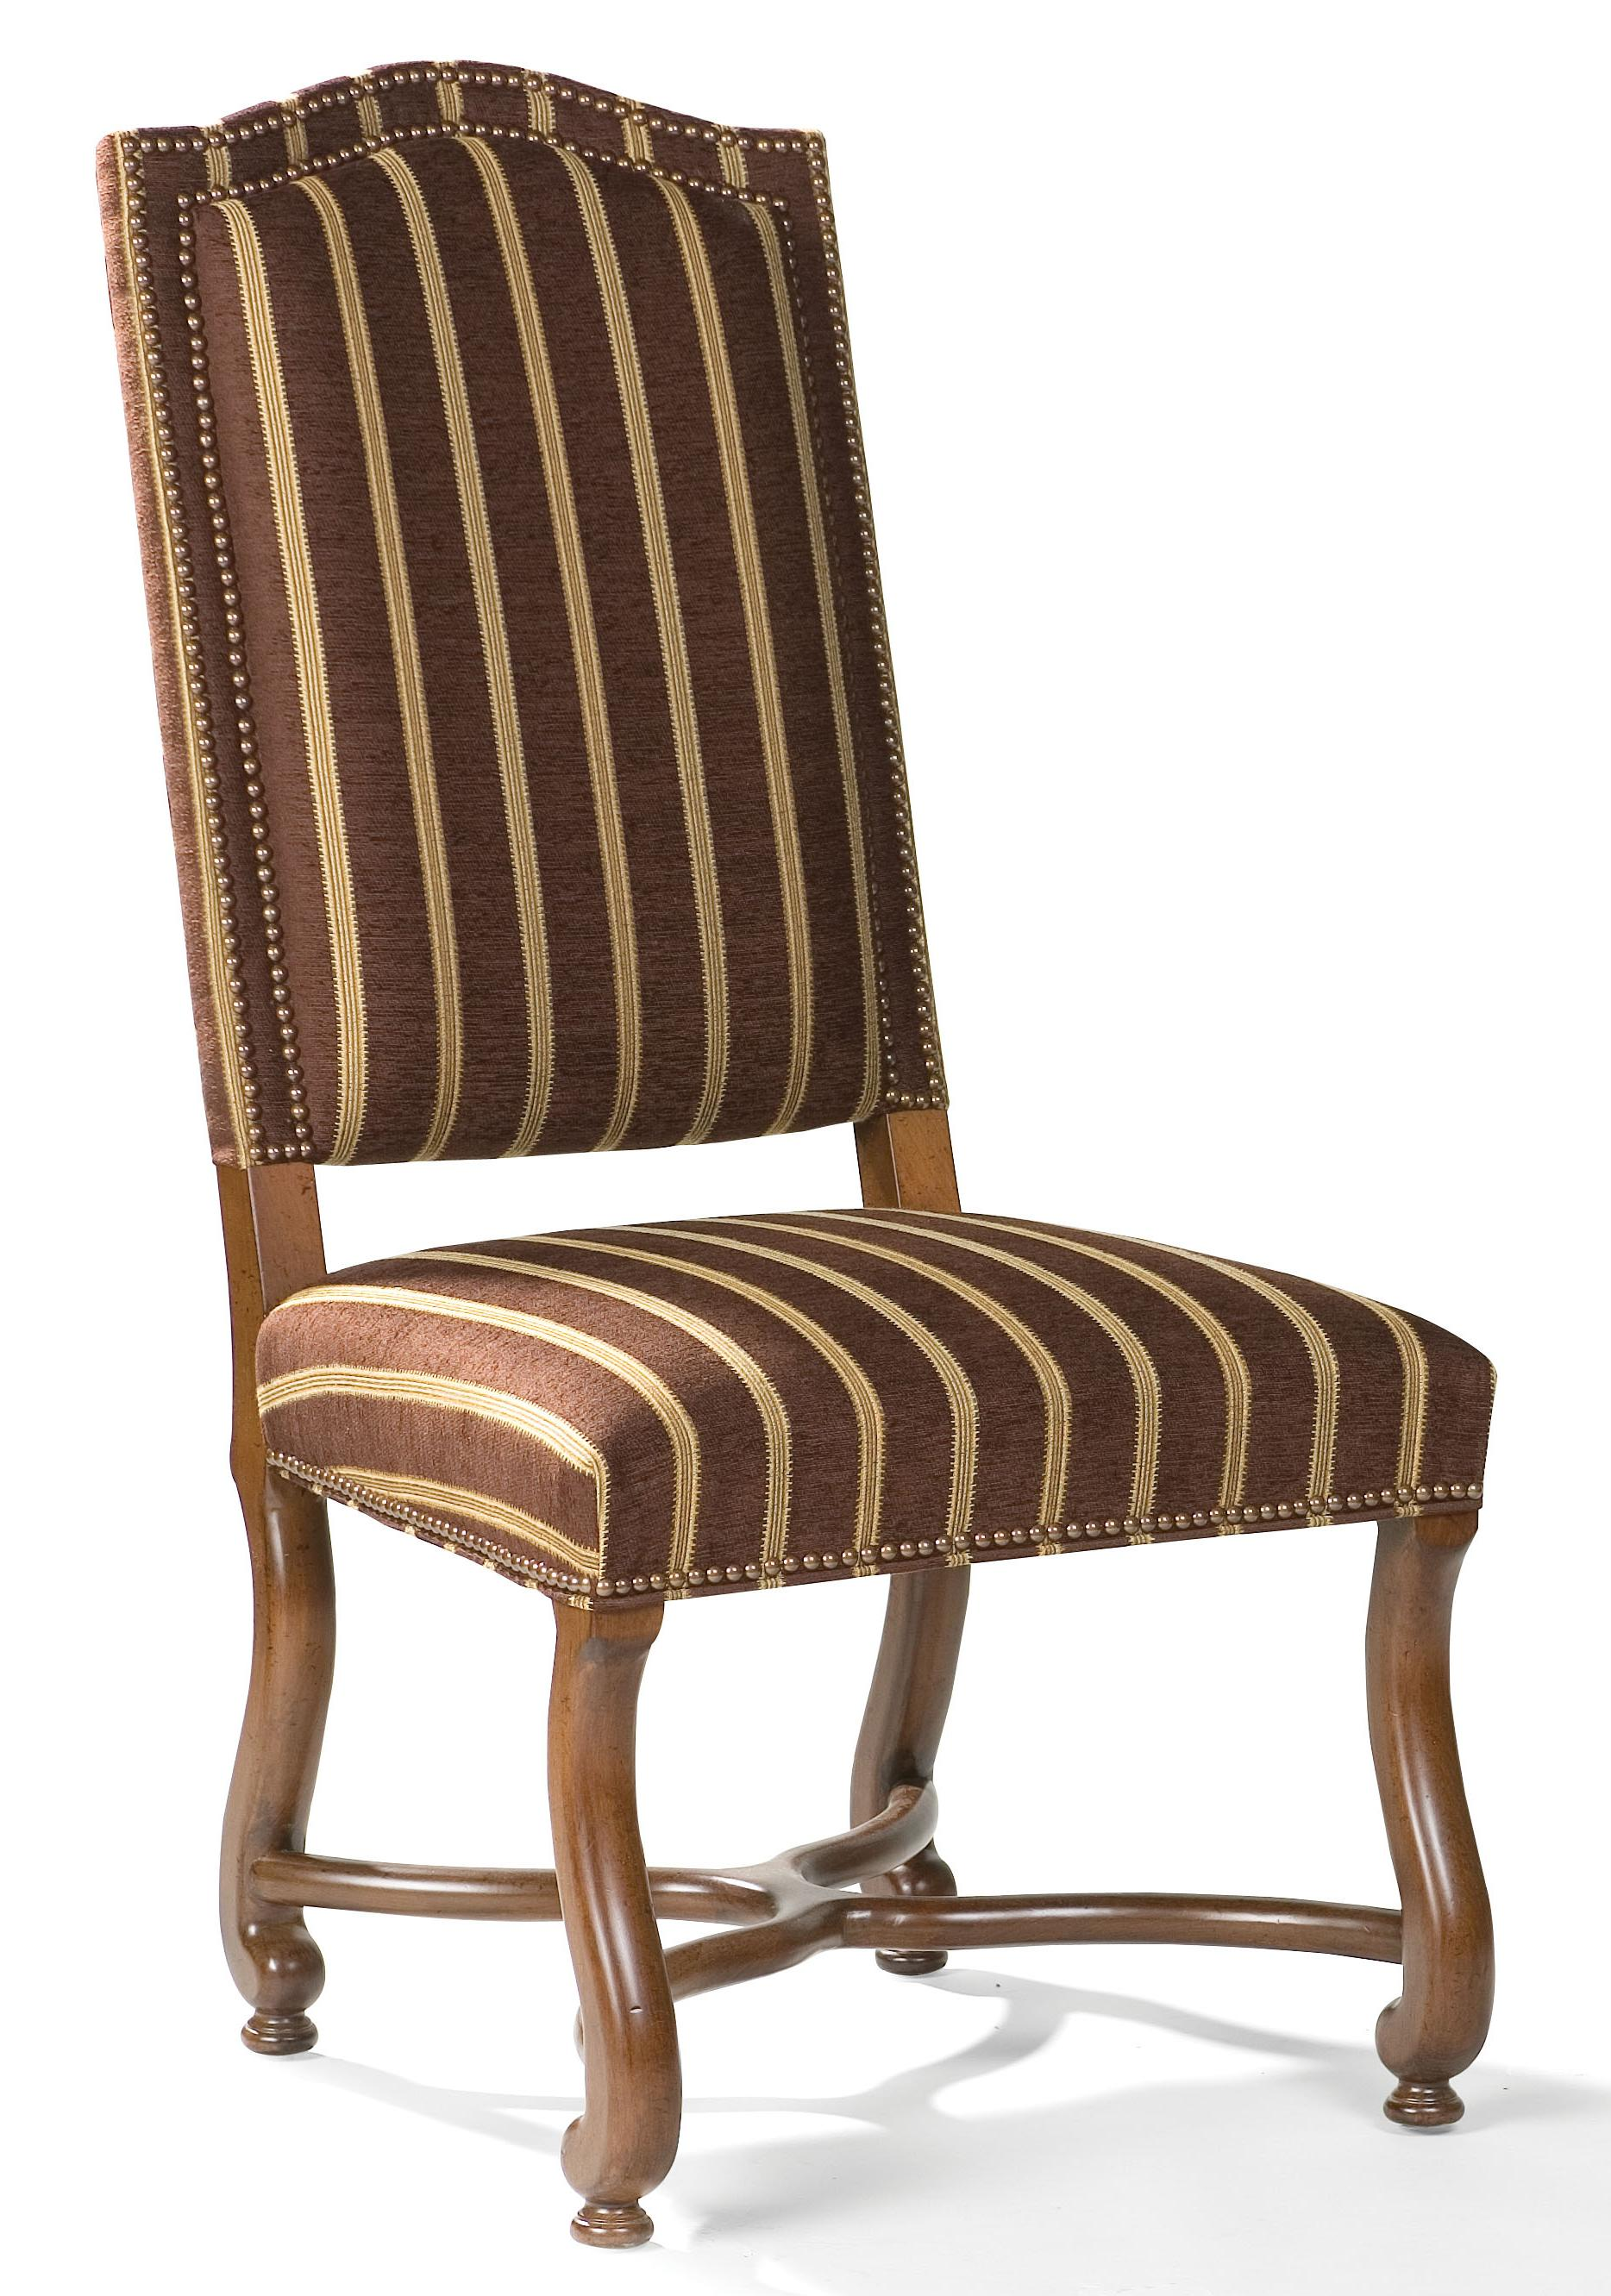 Fairfield Chairs Exposed Wood Side Chair - Item Number: 5474-05